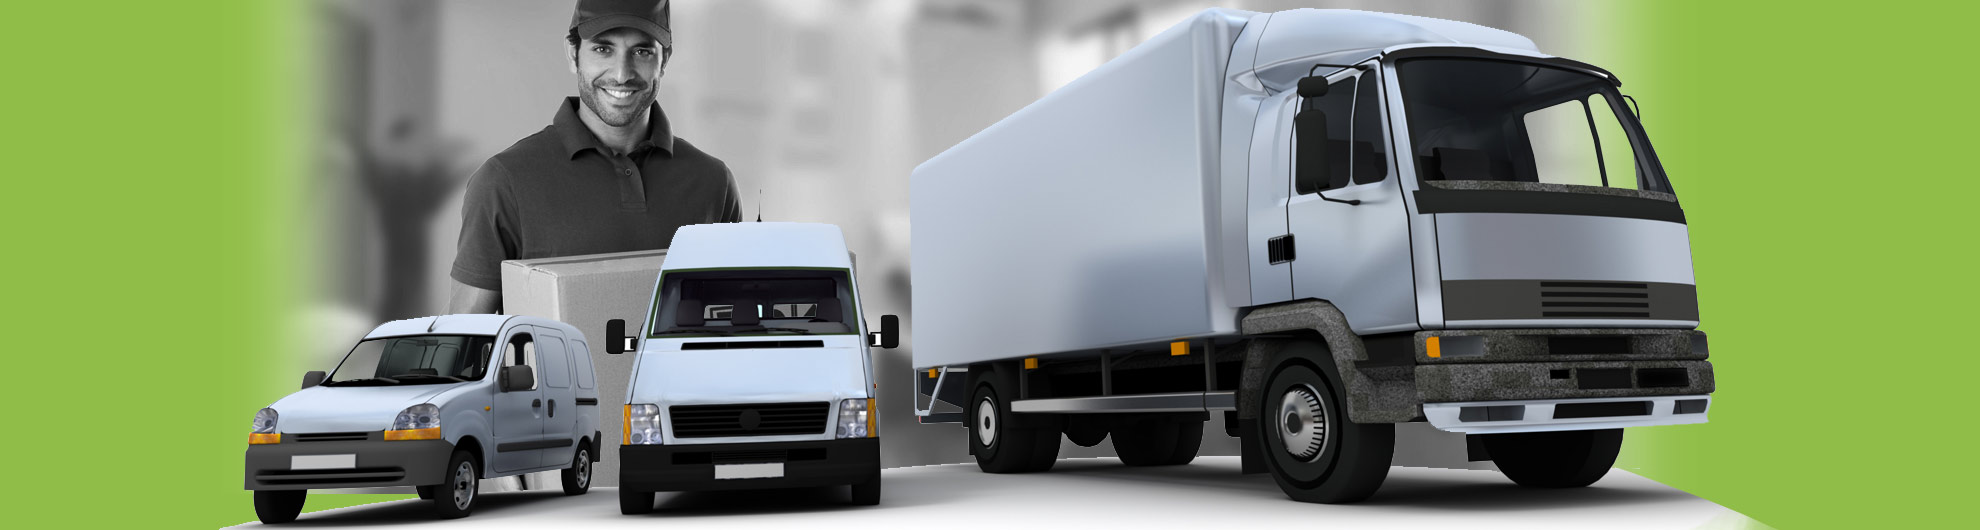 Yangzhou  International Movers - Shipping Companies